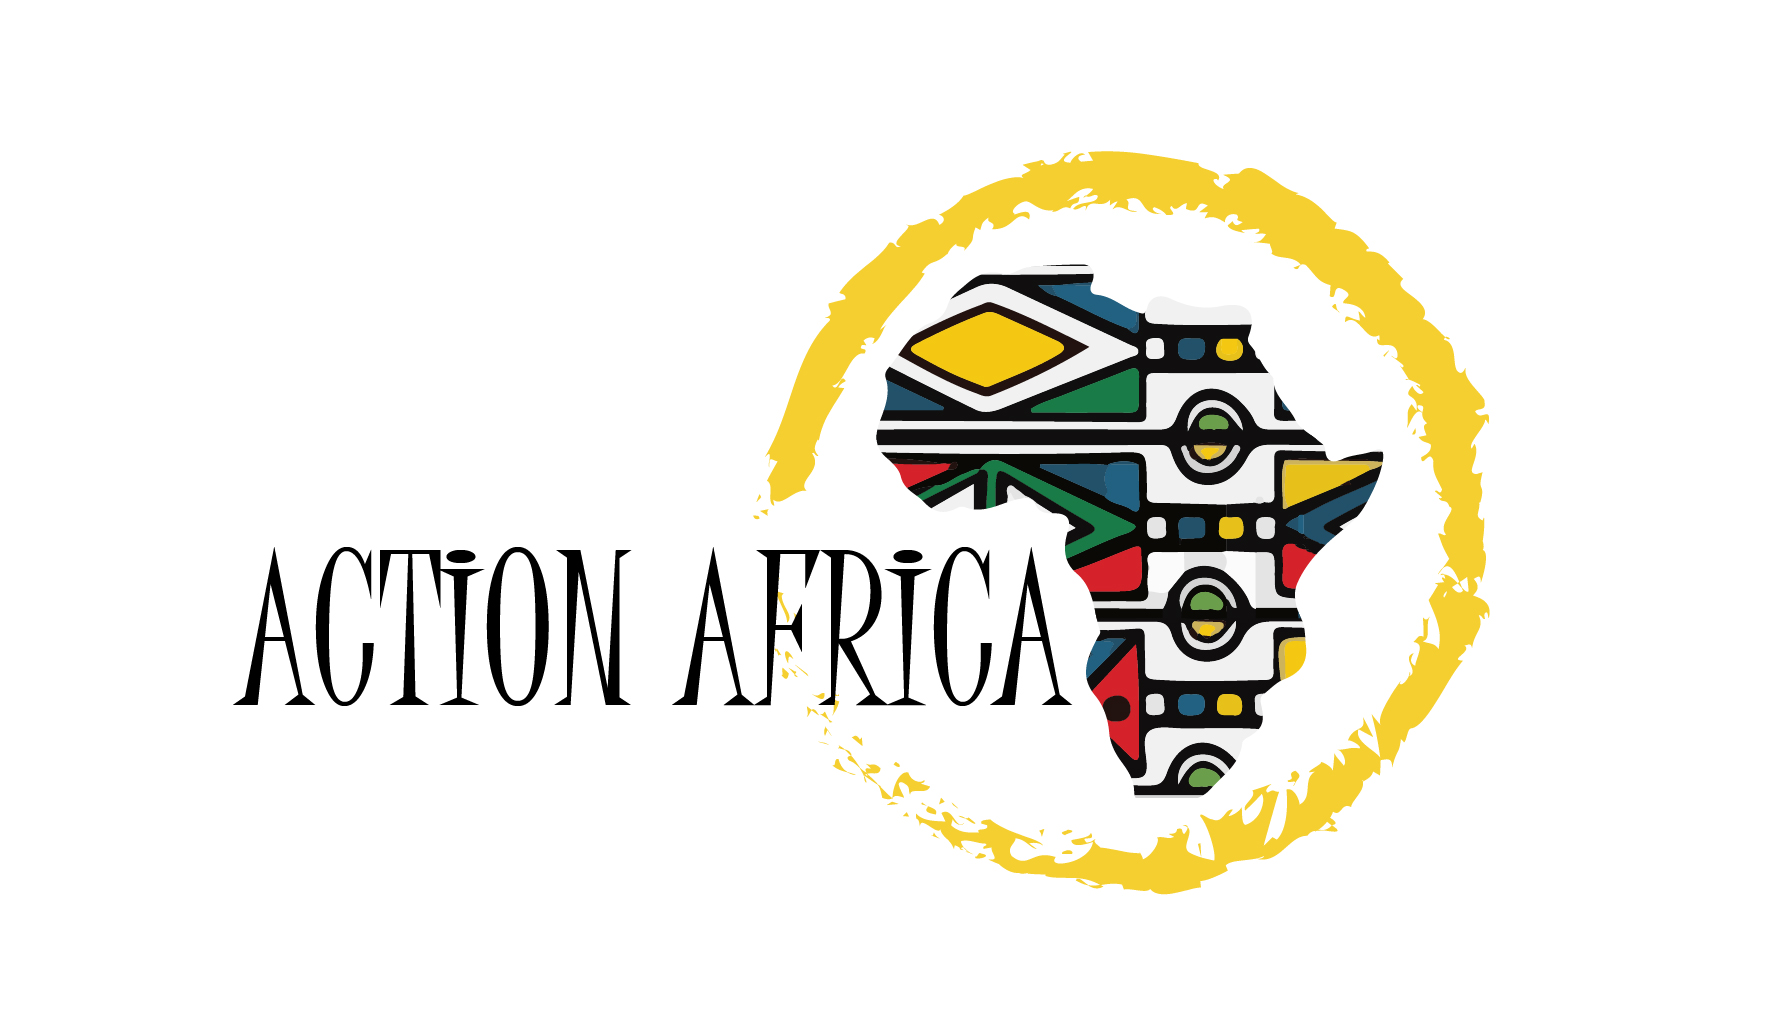 Action Africa